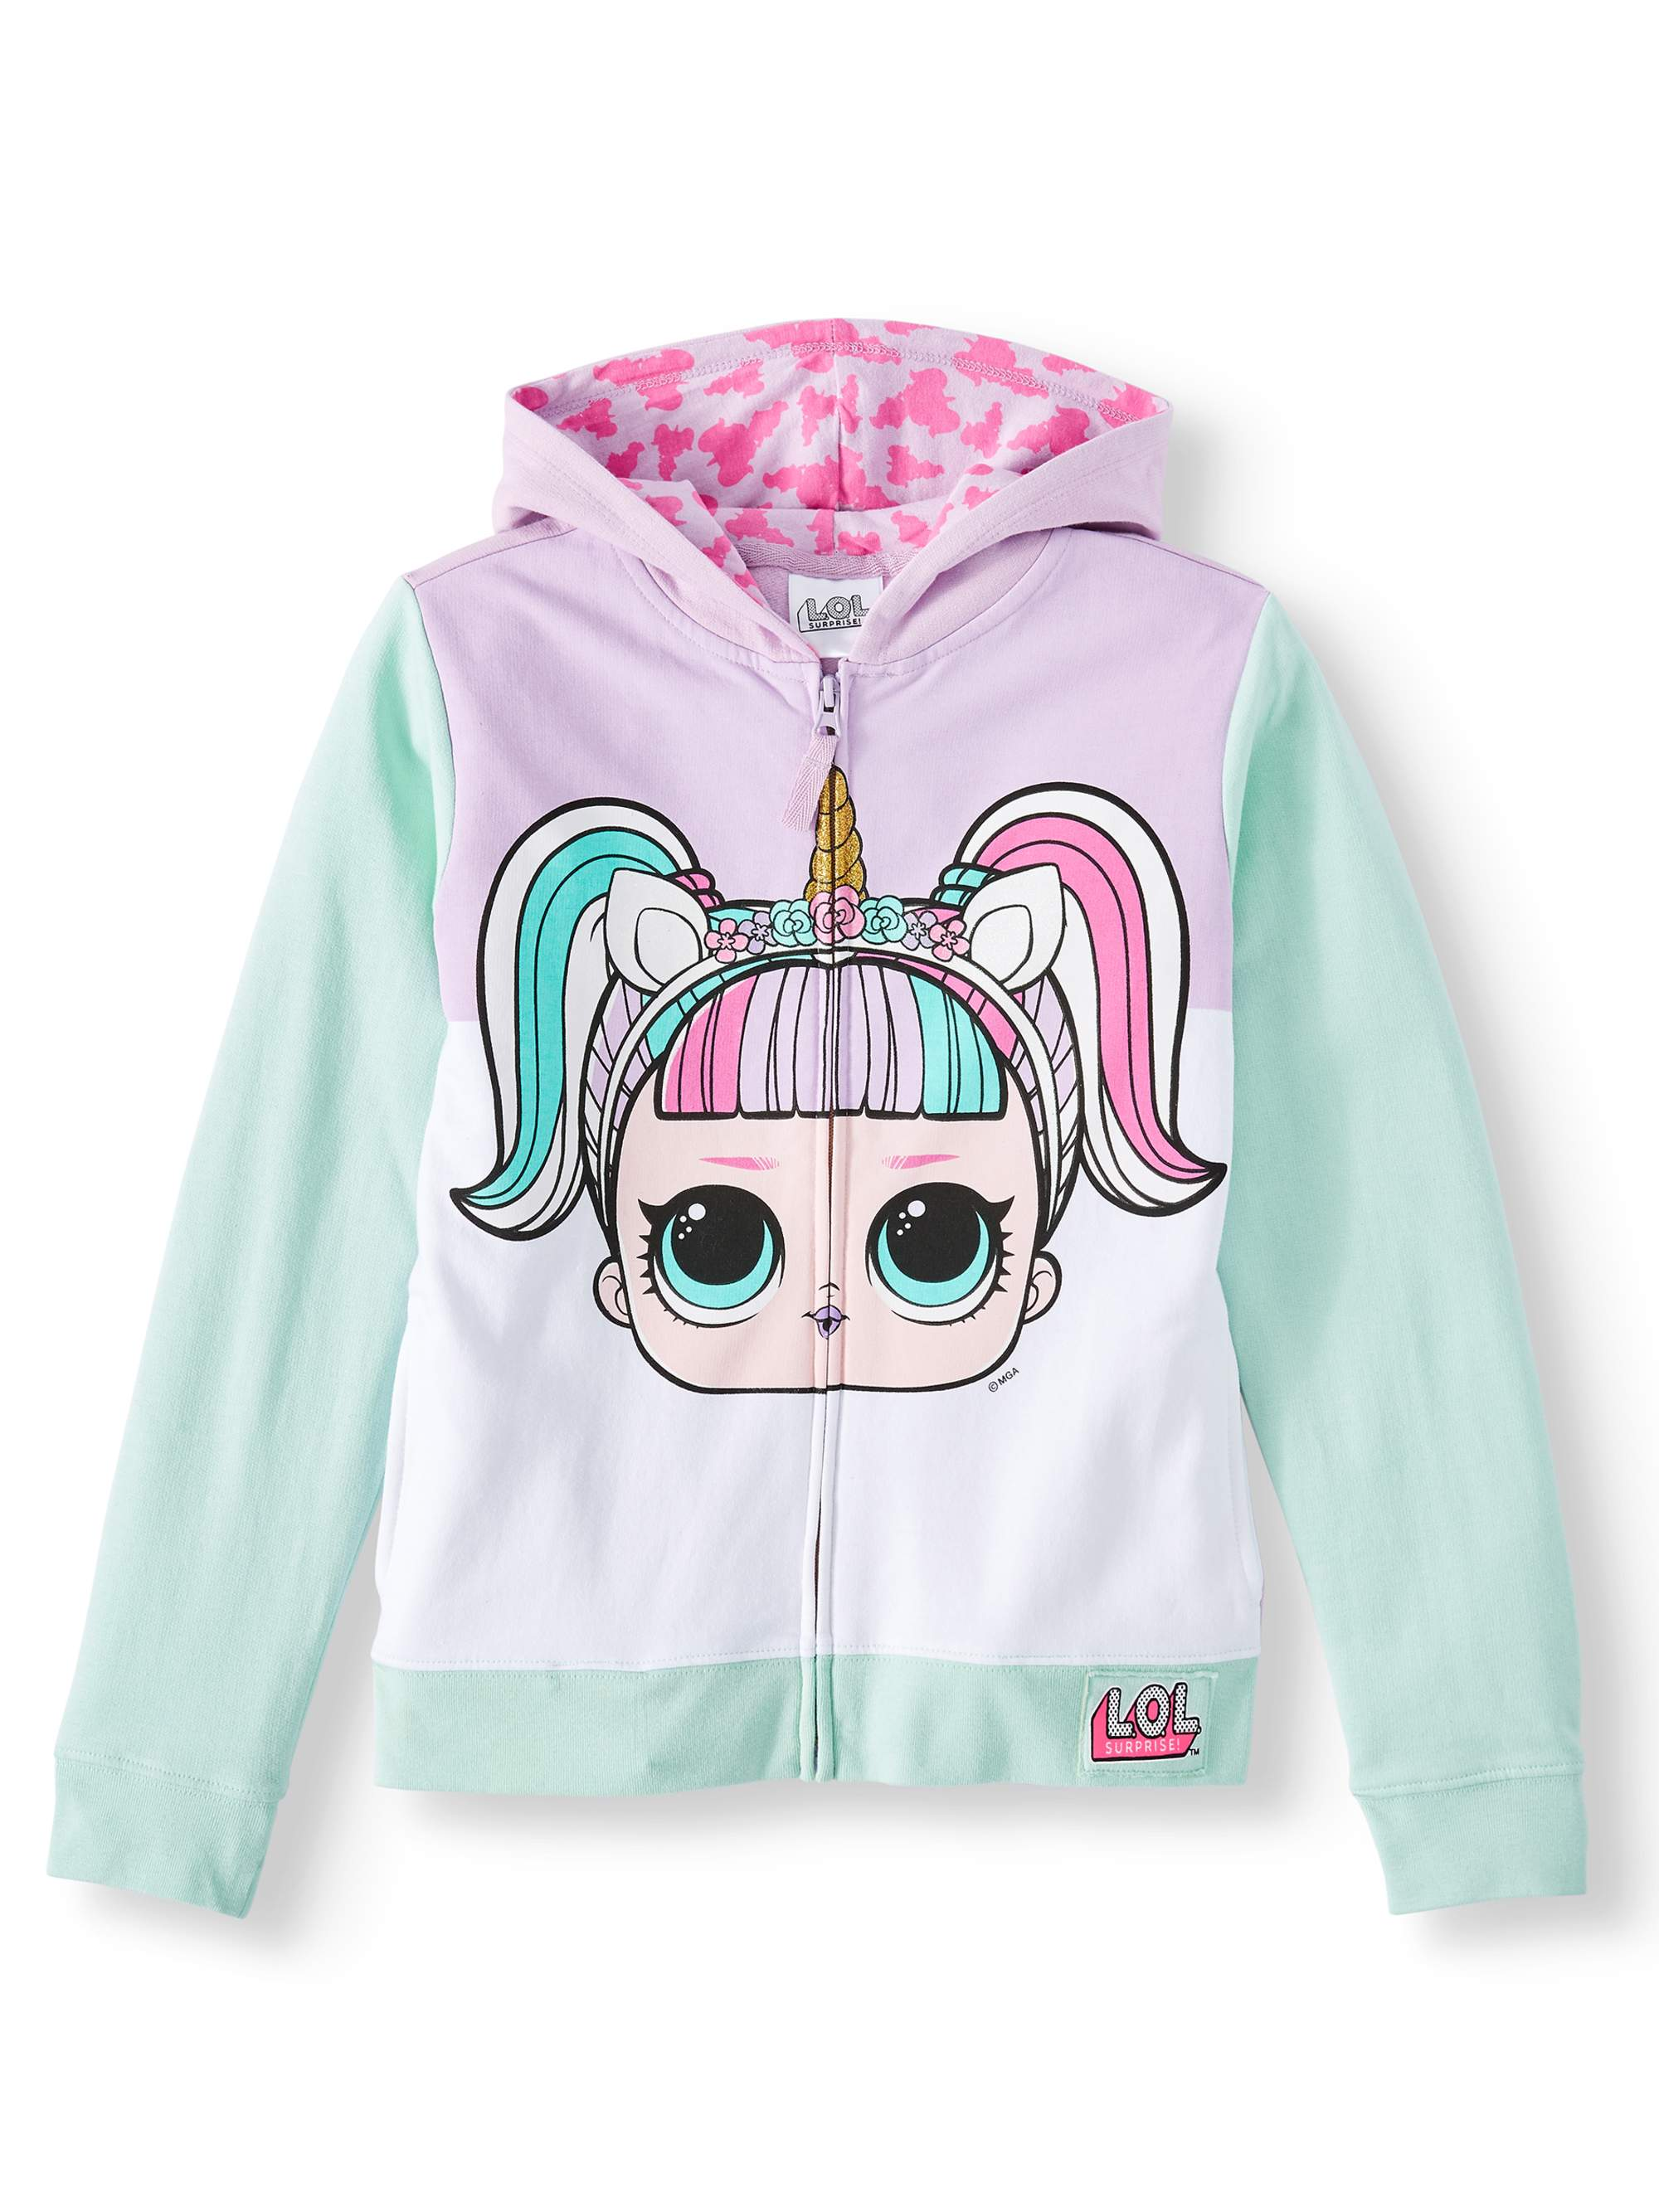 LOL Surprise doll accessories outfits clothes pink /& purple hoodie shirt